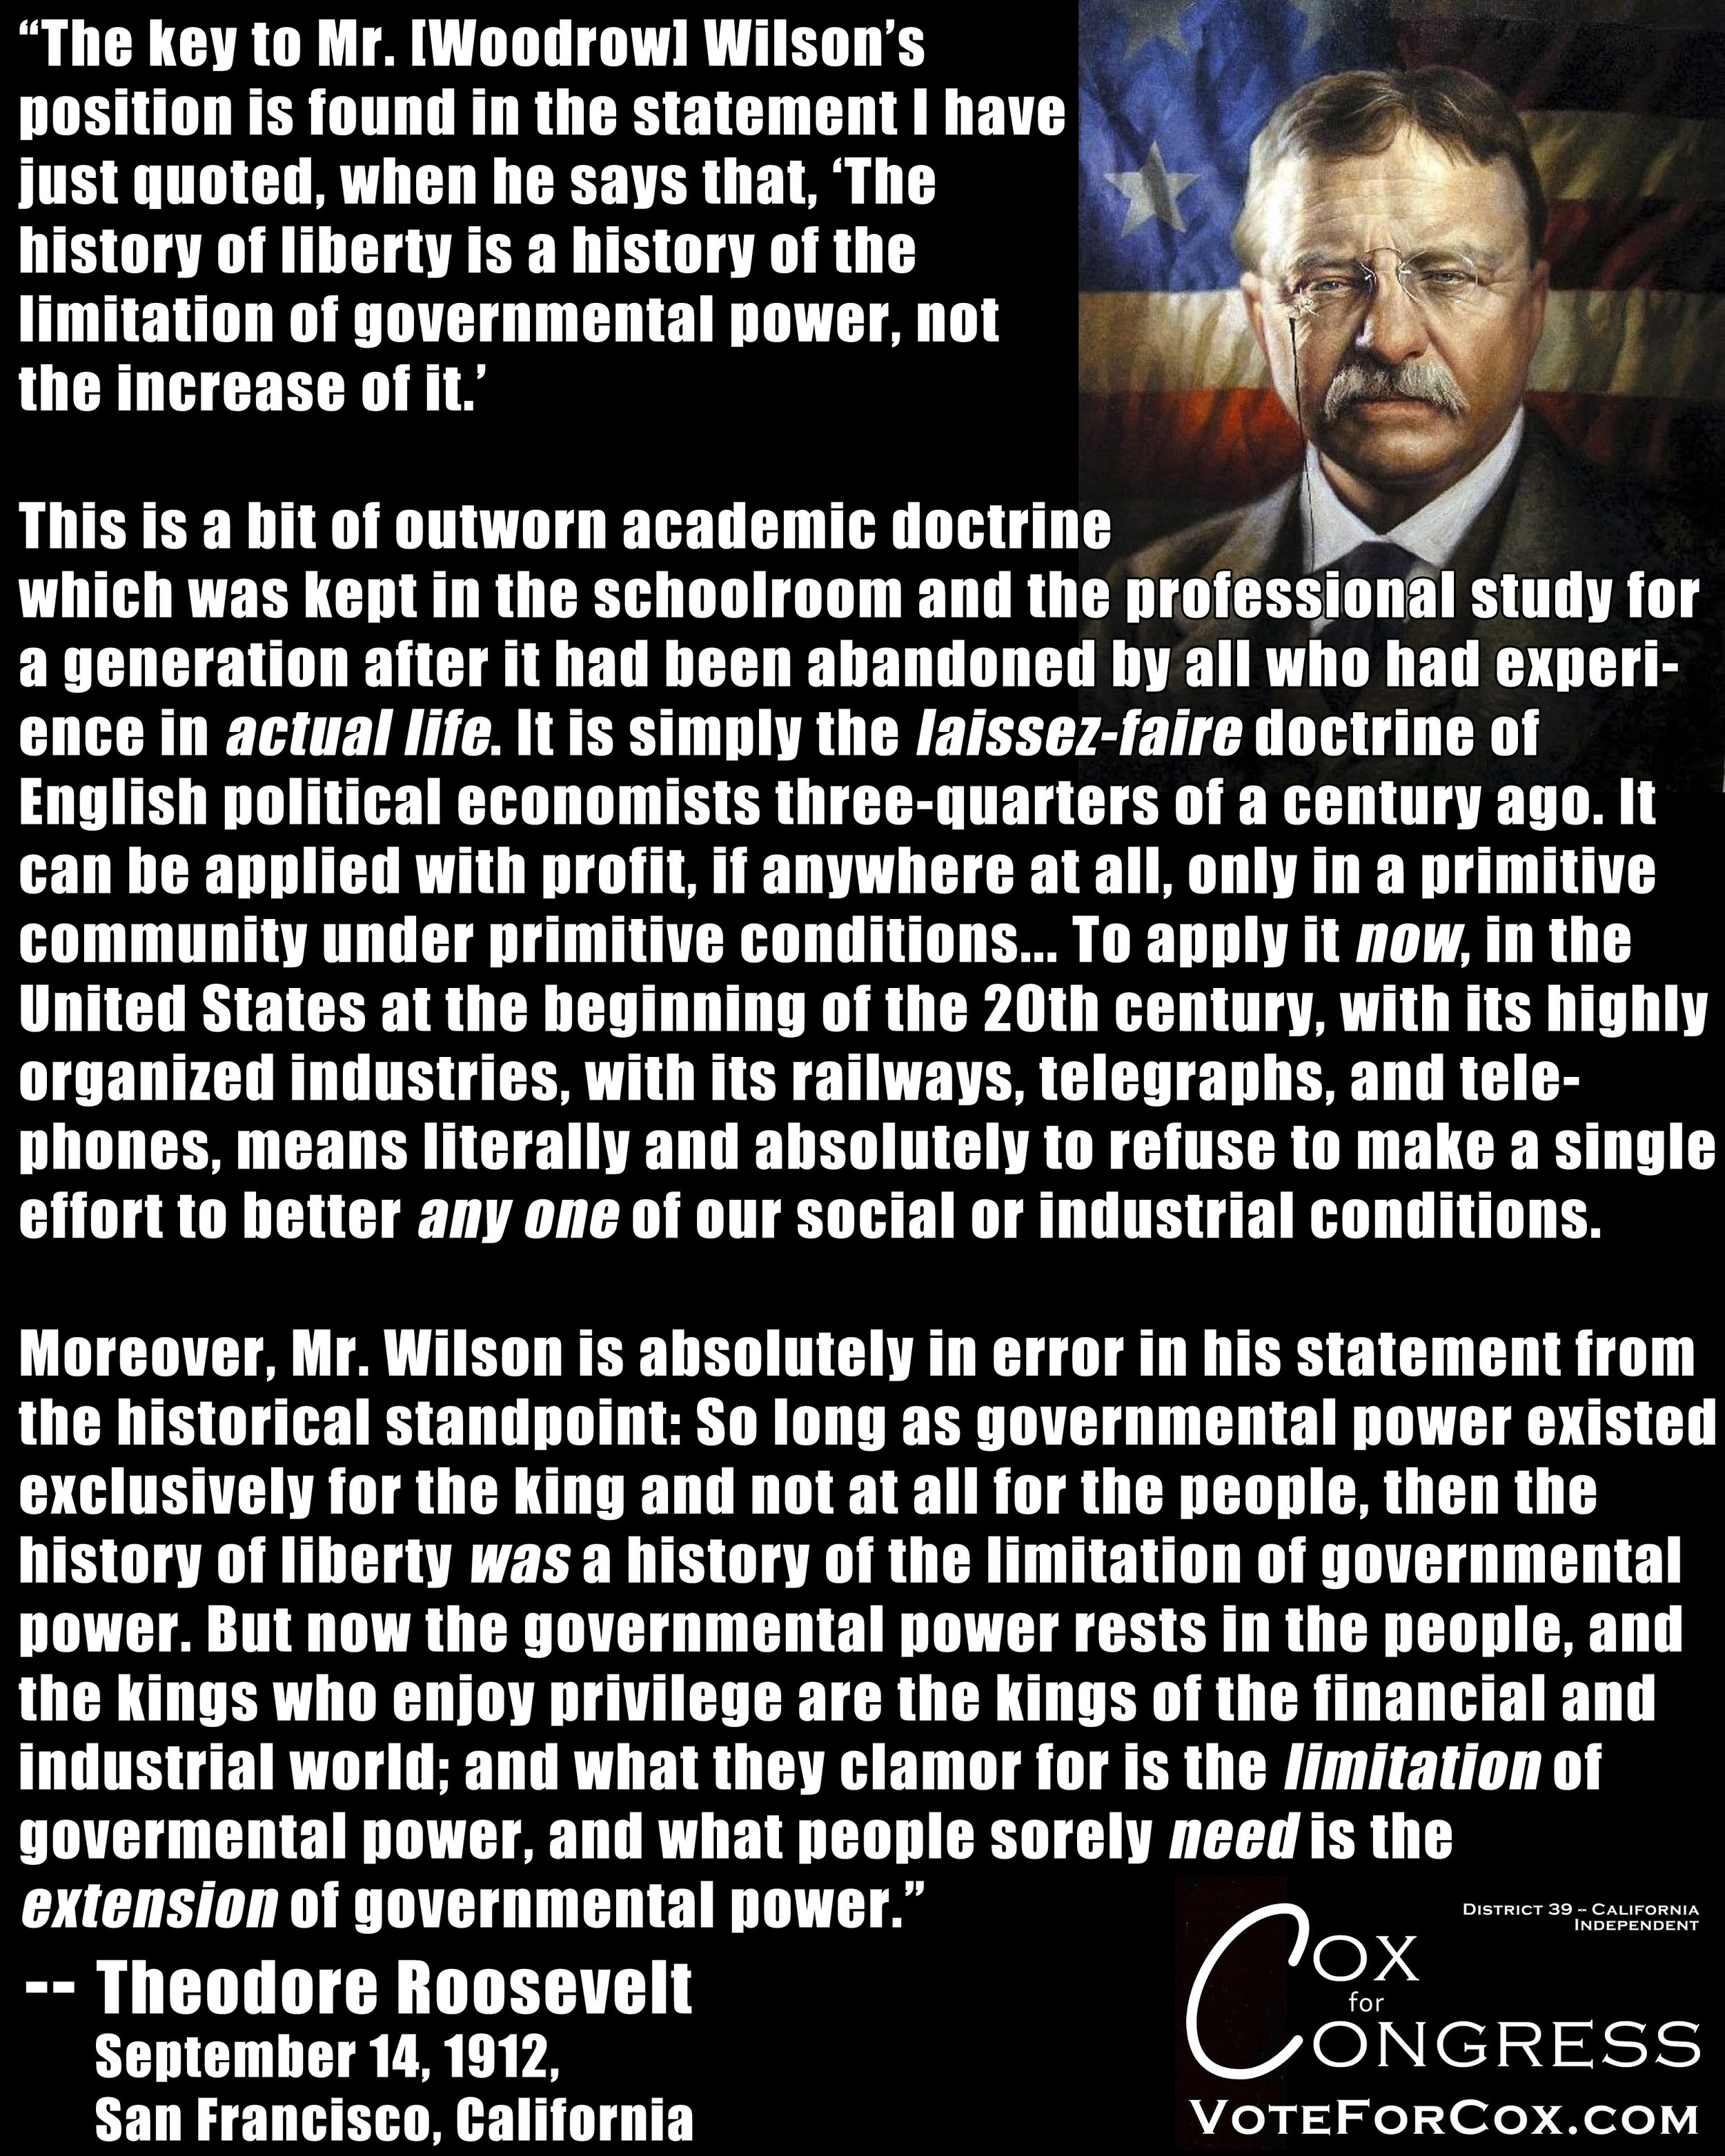 Part 1 of 2 of Teddy Roosevelt's speech as he ran for president as the head of a third party known as the Progressive Party, also known as the Bull Moose Party.